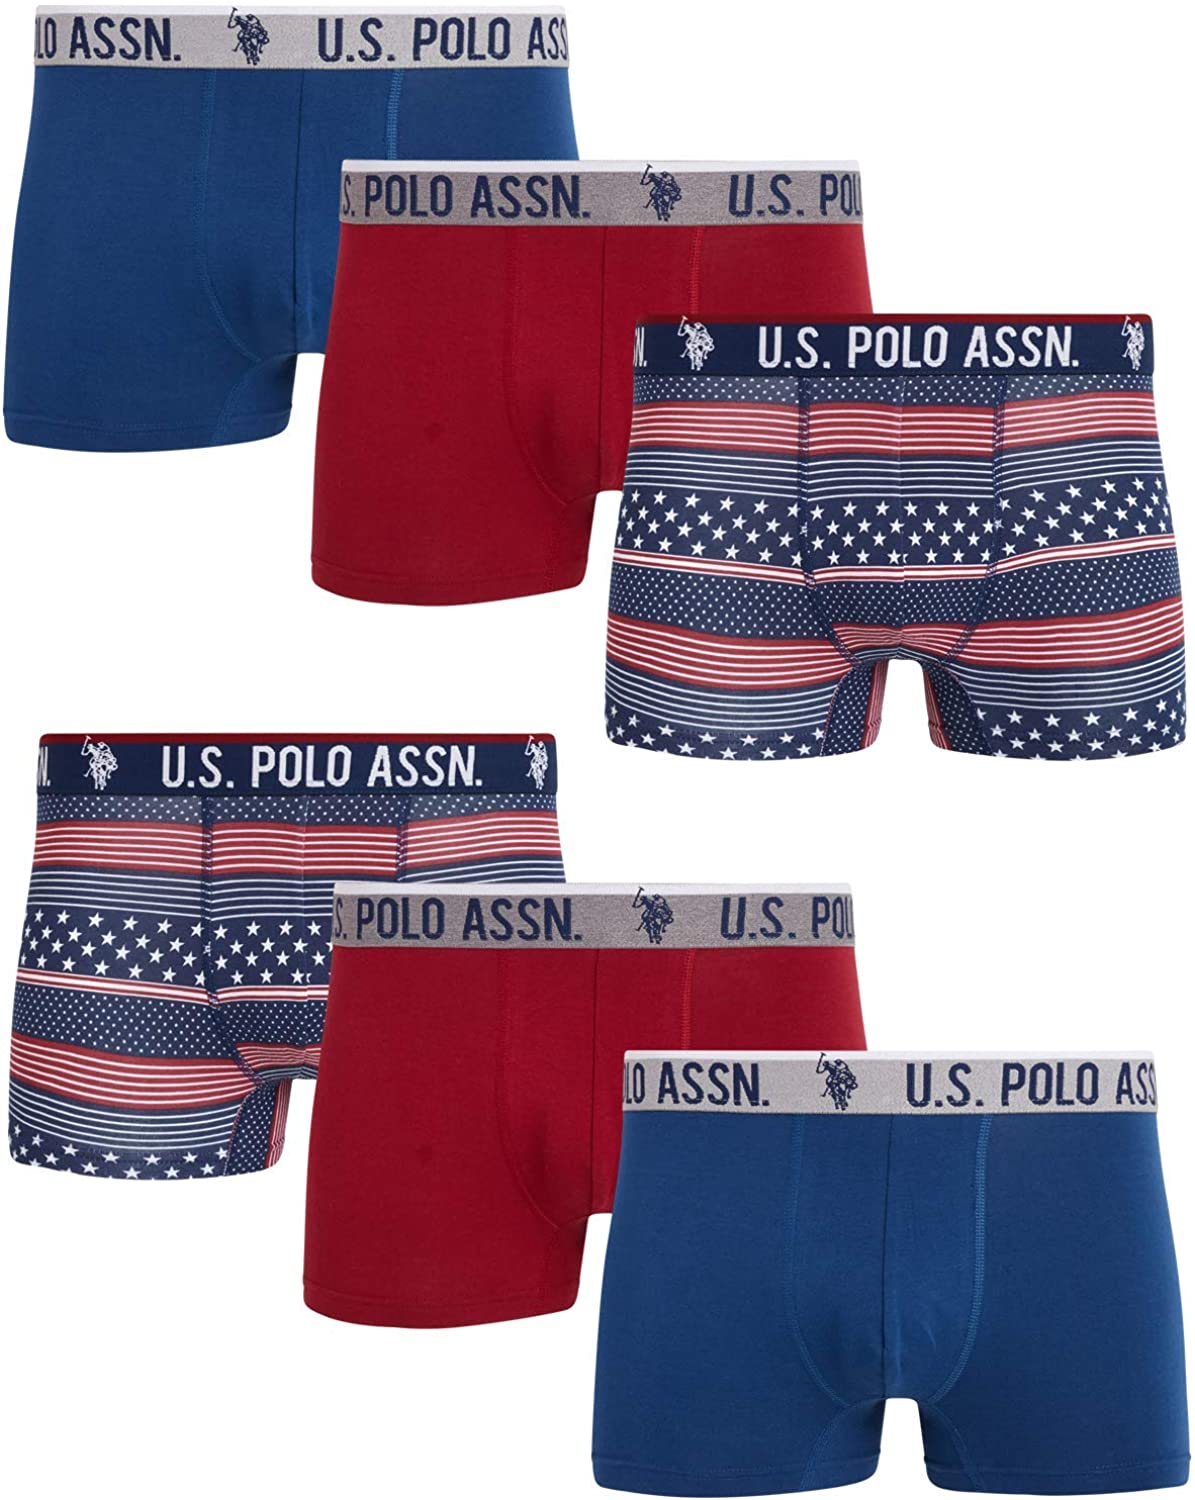 U.S. Polo Assn. Men's Underwear – Cotton Stretch Trunks with Comfort Pouch (6 Pack)